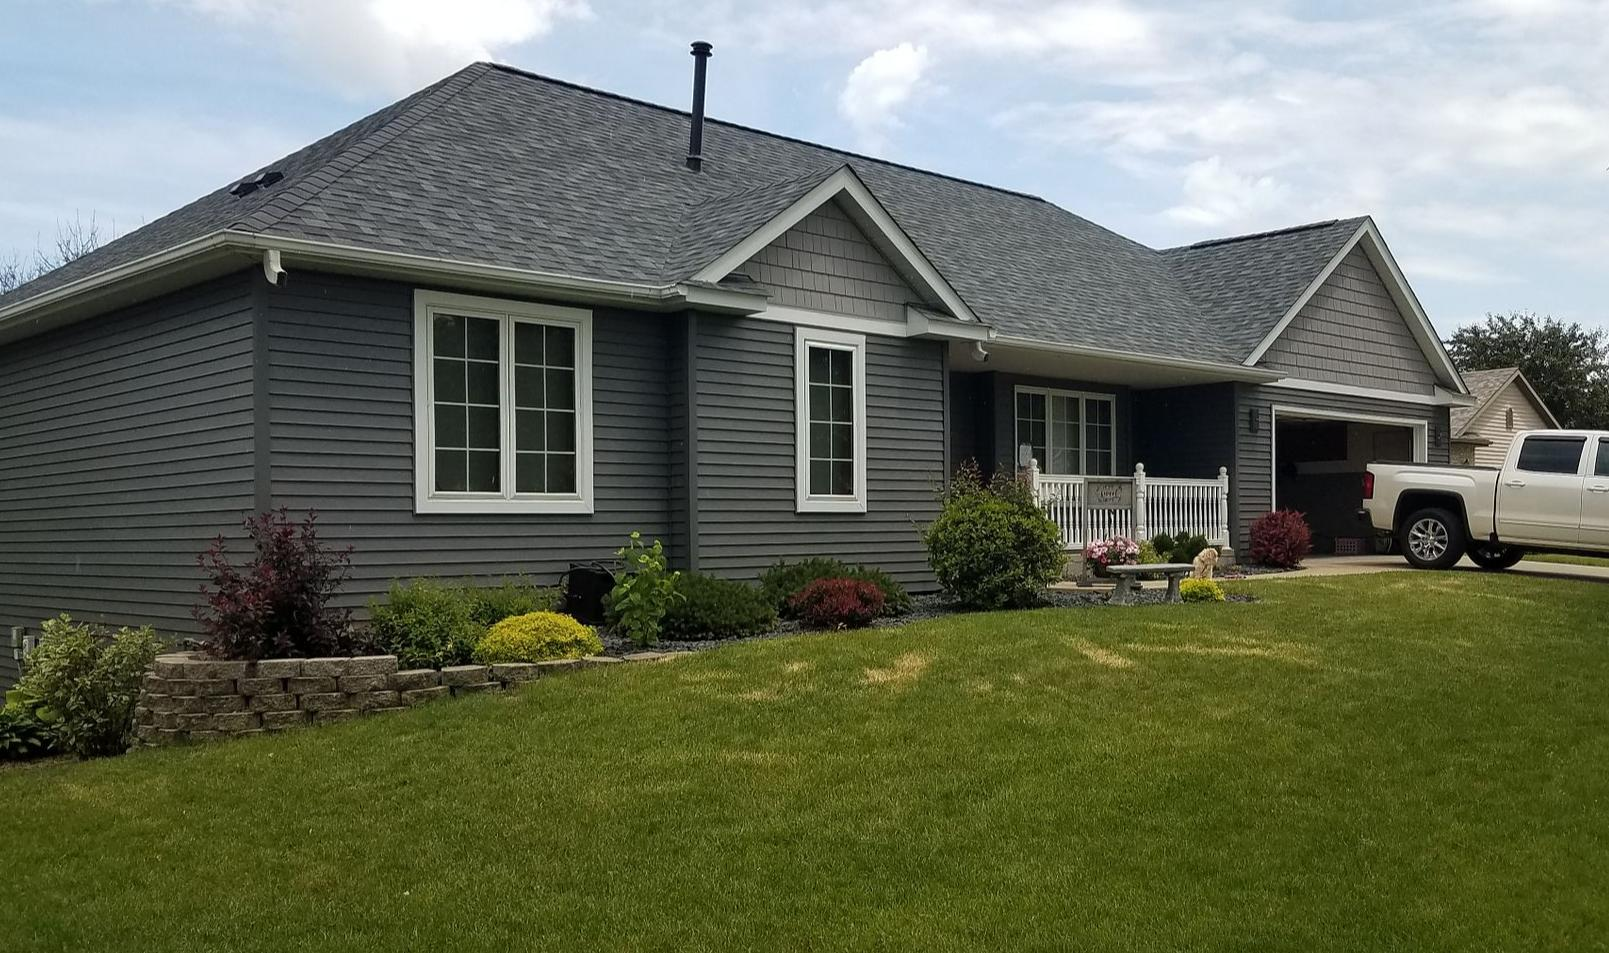 Roofing and Siding Replacement in Kasson, MN - After Photo